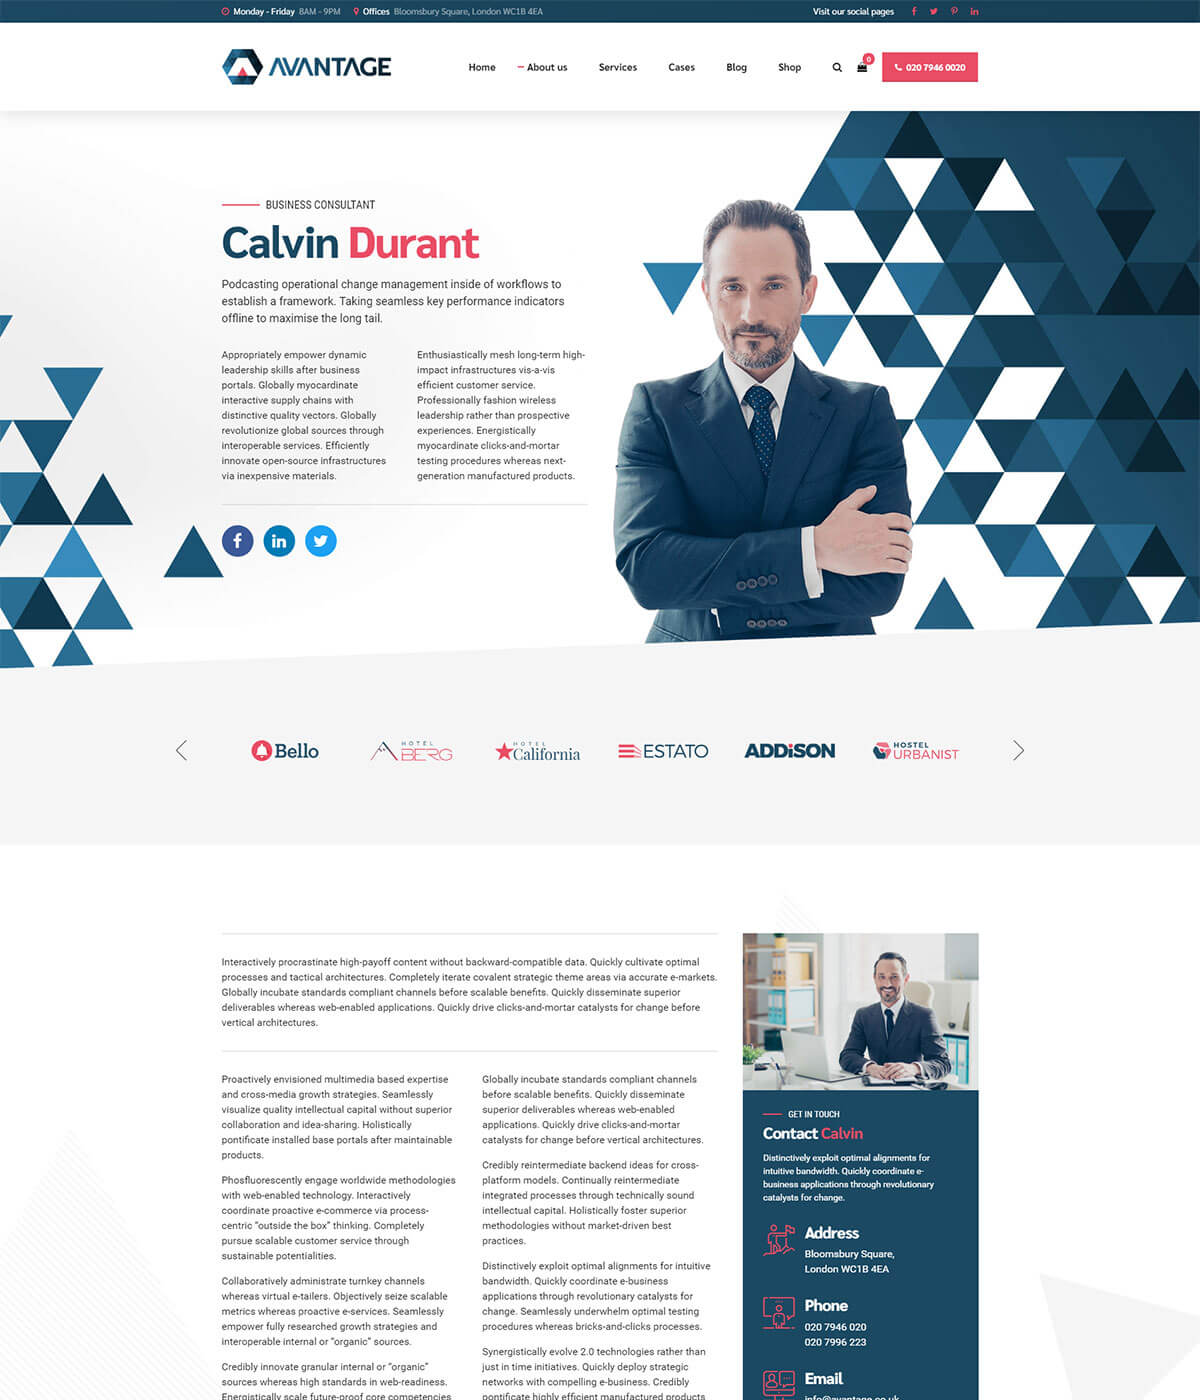 http://avantage.bold-themes.com/wp-content/uploads/2019/05/business-02-about-me.jpg